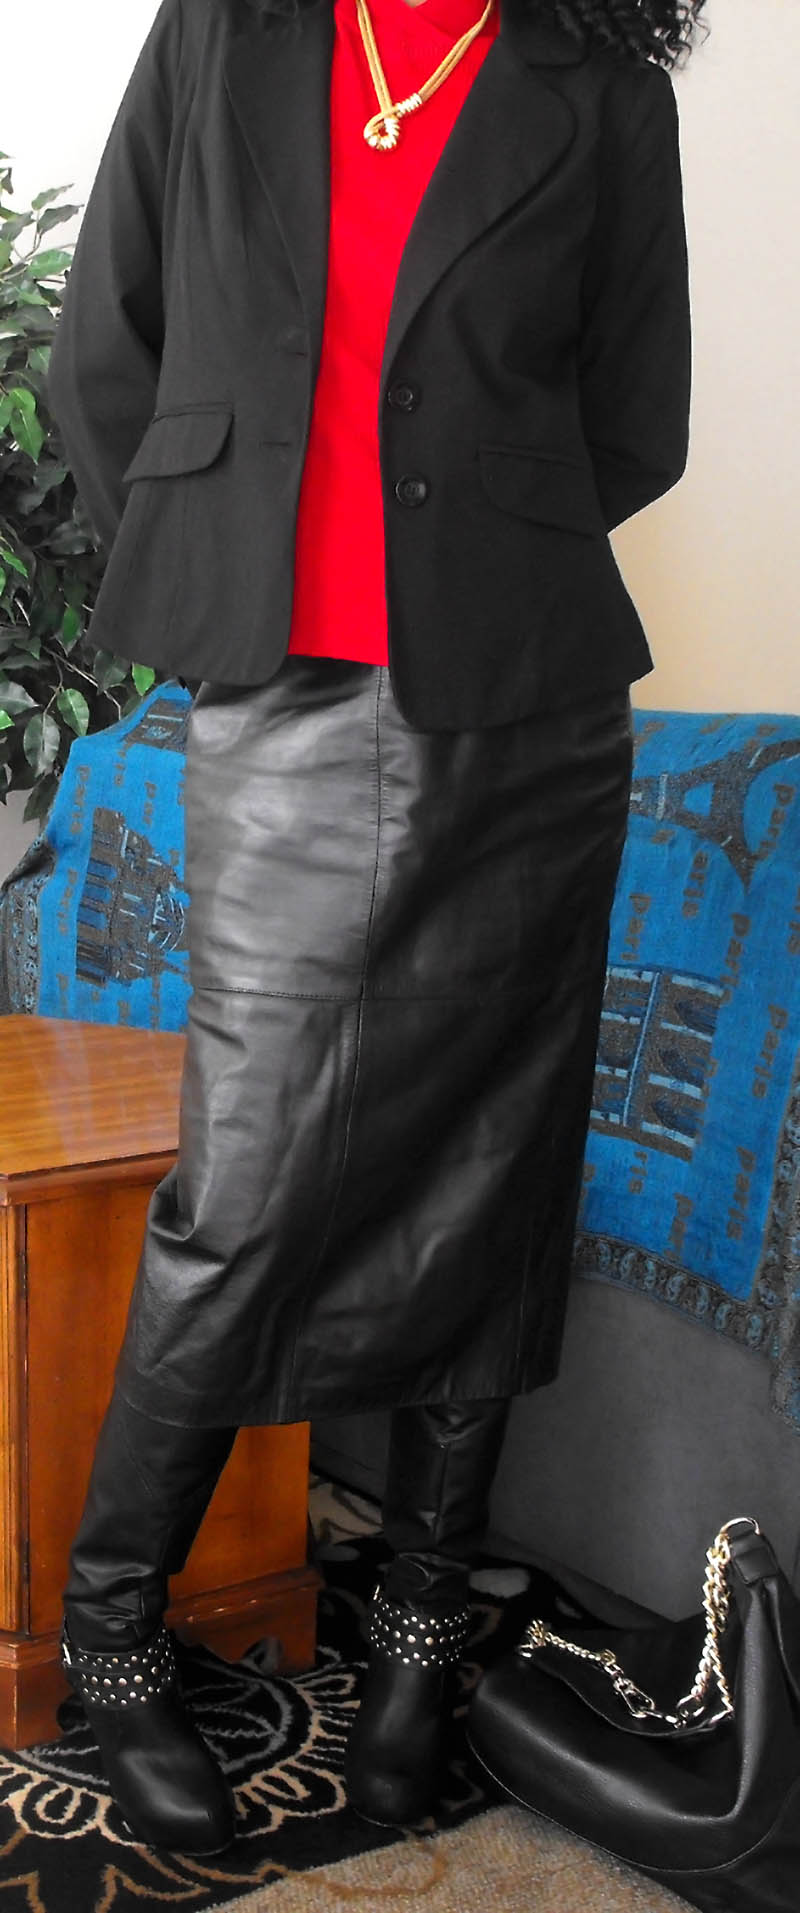 black leather skirt red top black blazer black stiletto knee high boots fake gold necklace